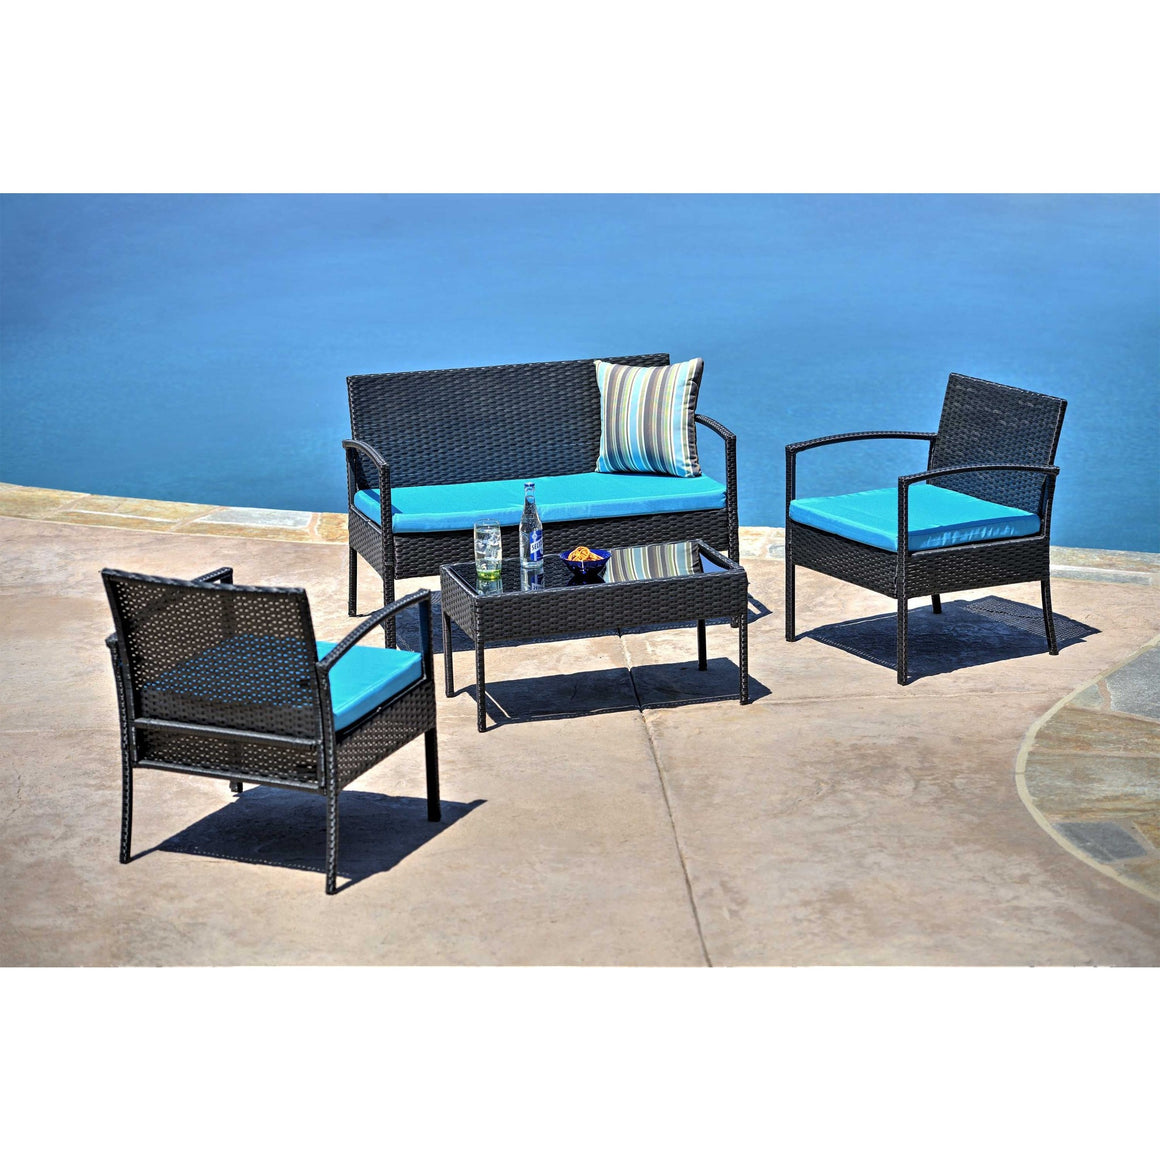 W Unlimited Outdoor Wicker Furniture 4PC set w/ Table Blue Cushion